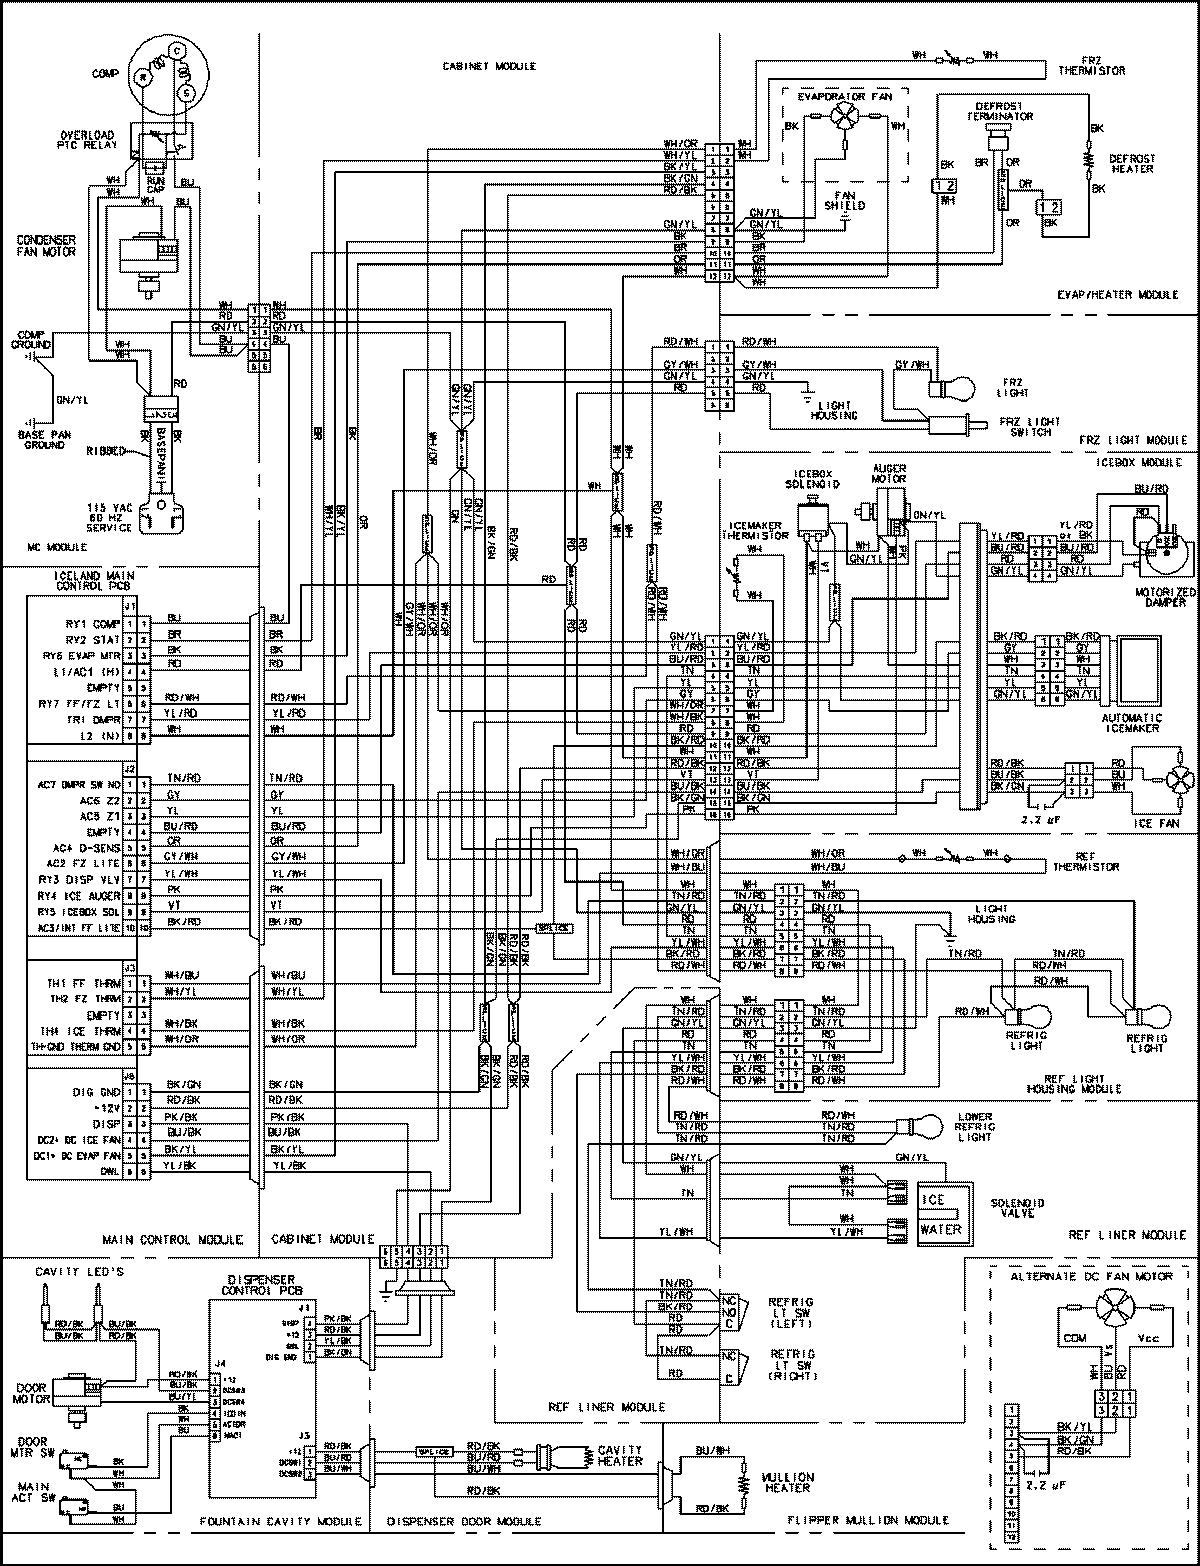 lg refrigerator parts diagram awesome maytag thermostat schematic